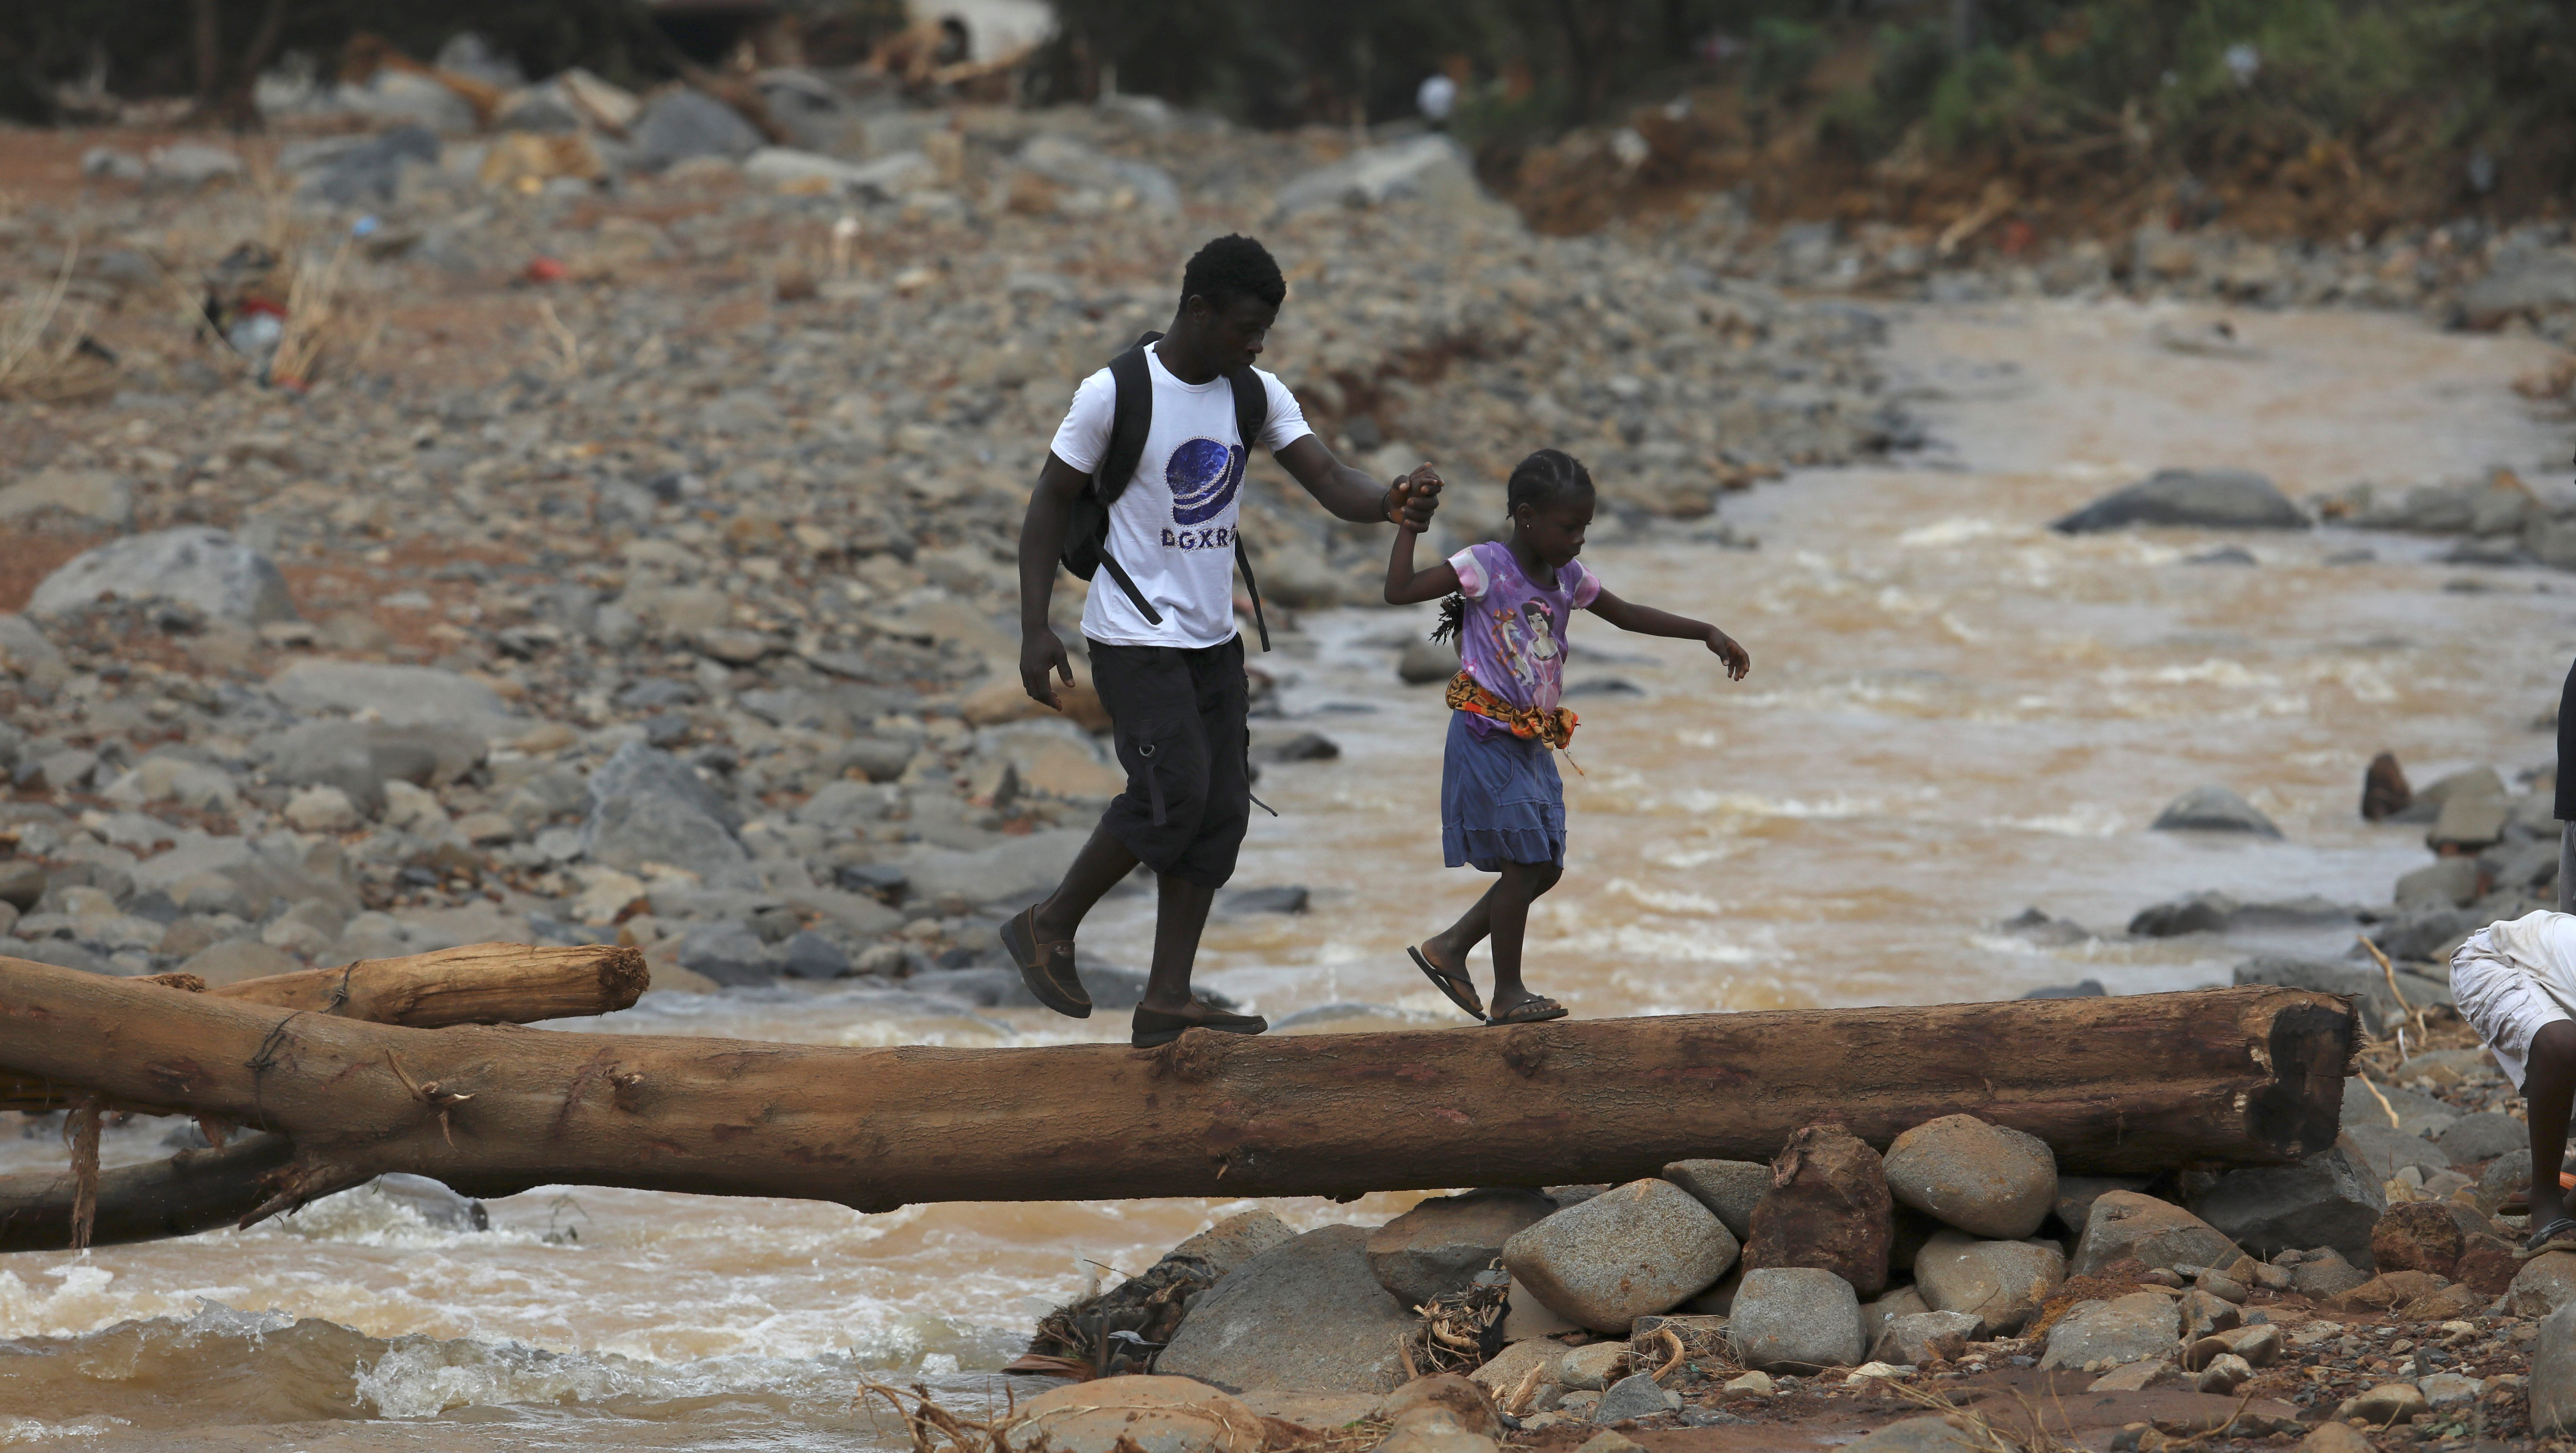 A man helps a girl cross a log bridge after the flash flood washed away the concrete bridge at Pentagon, in Freetown, Sierra Leone August 18, 2017.